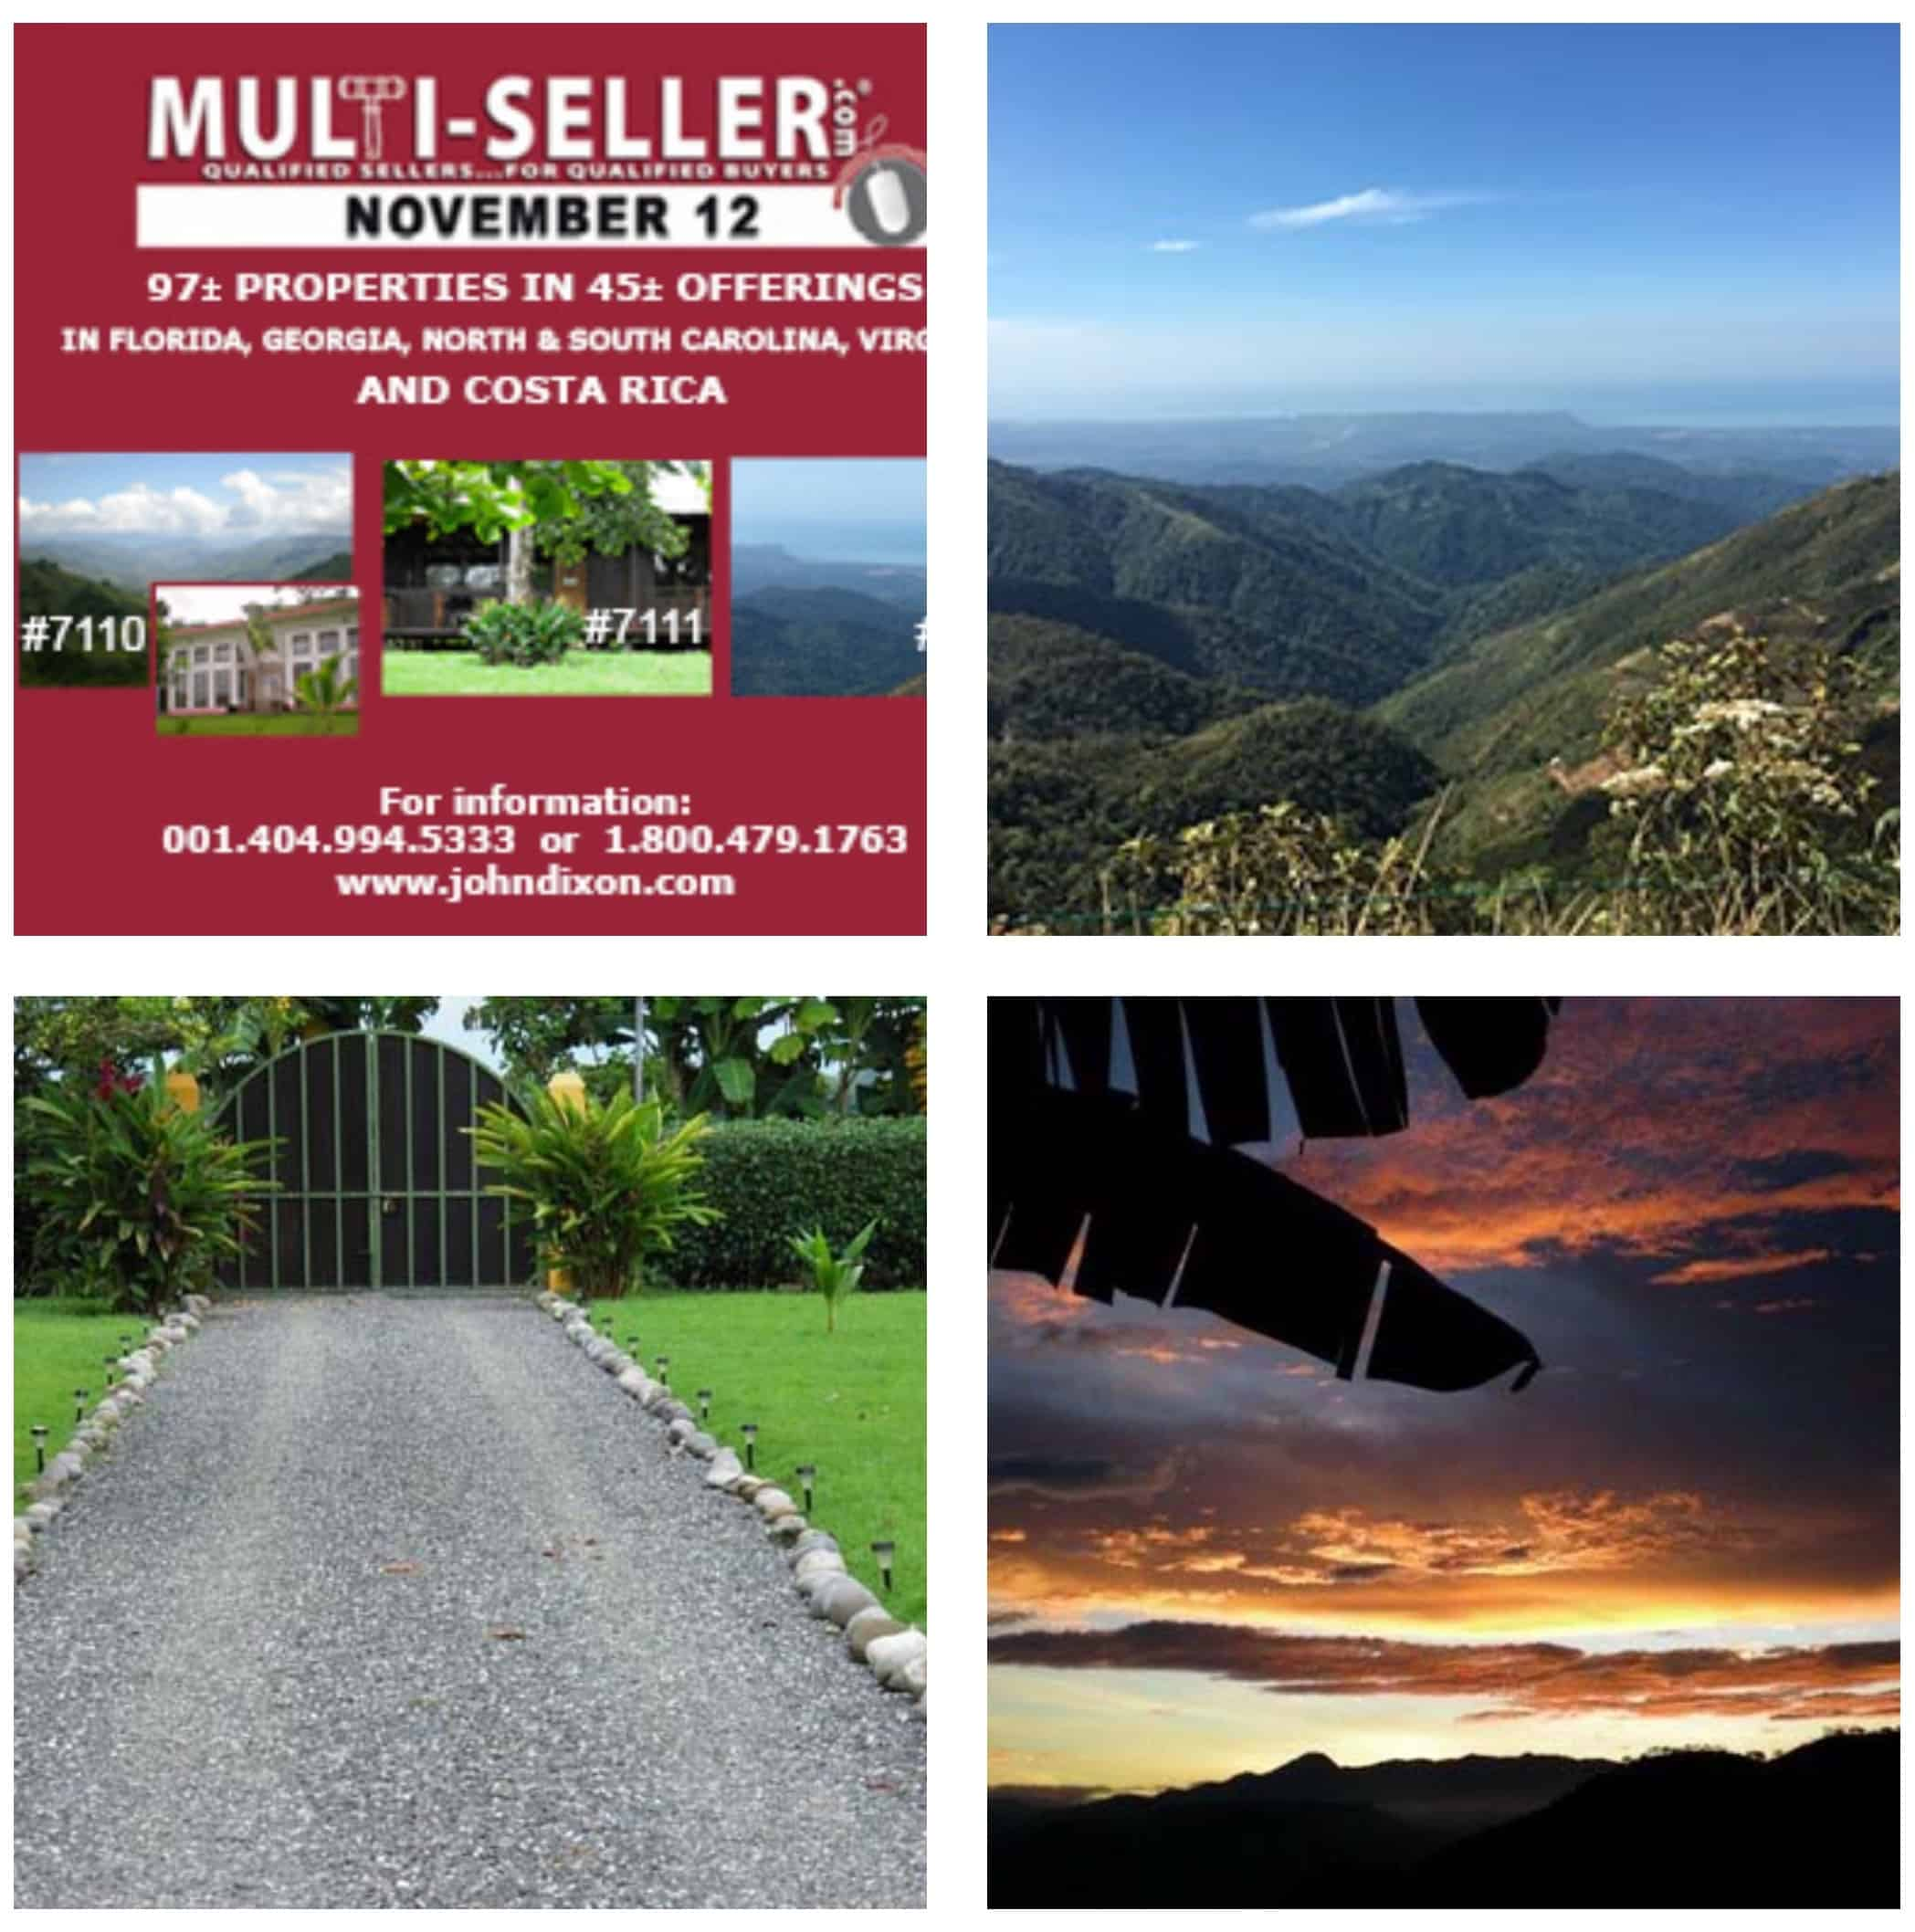 Multi-seller real estate auction includes three properties in Costa Rica listed here